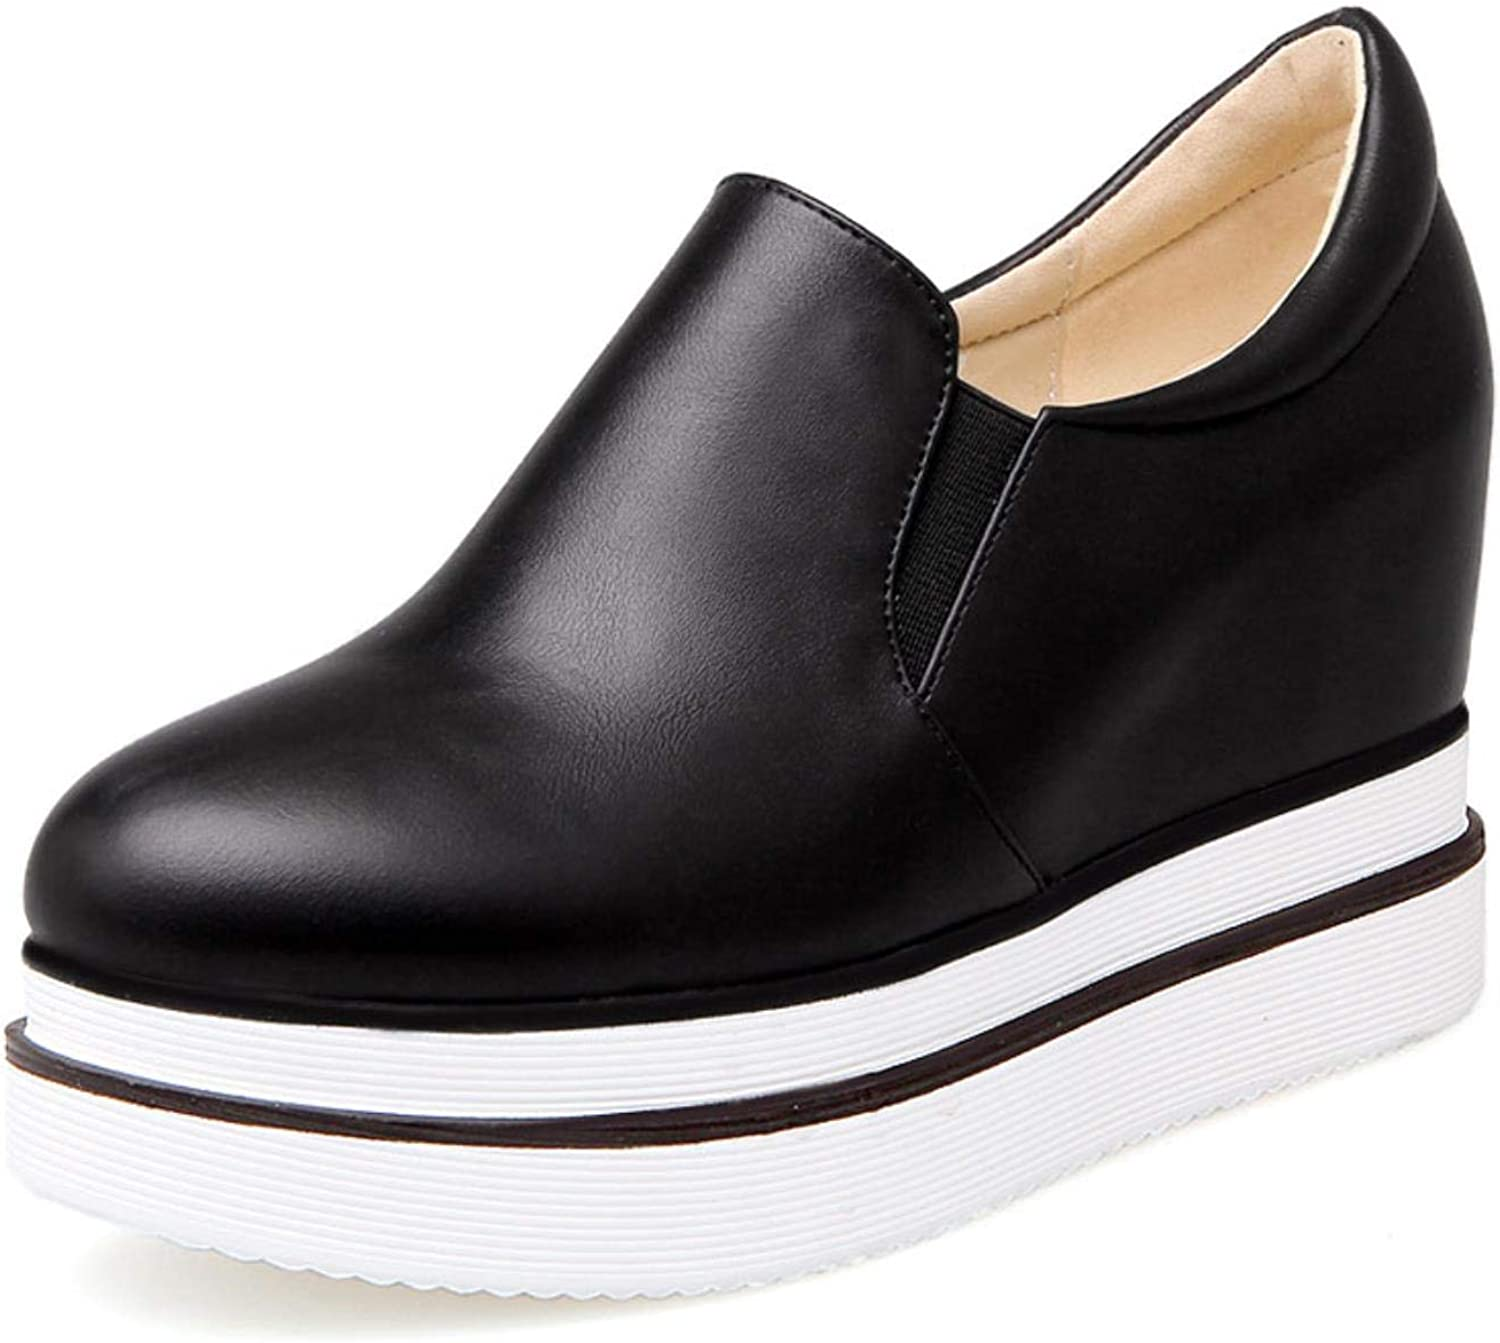 Comfort Round Toe Slip-on Women Solid Casual Flat Platform shoes